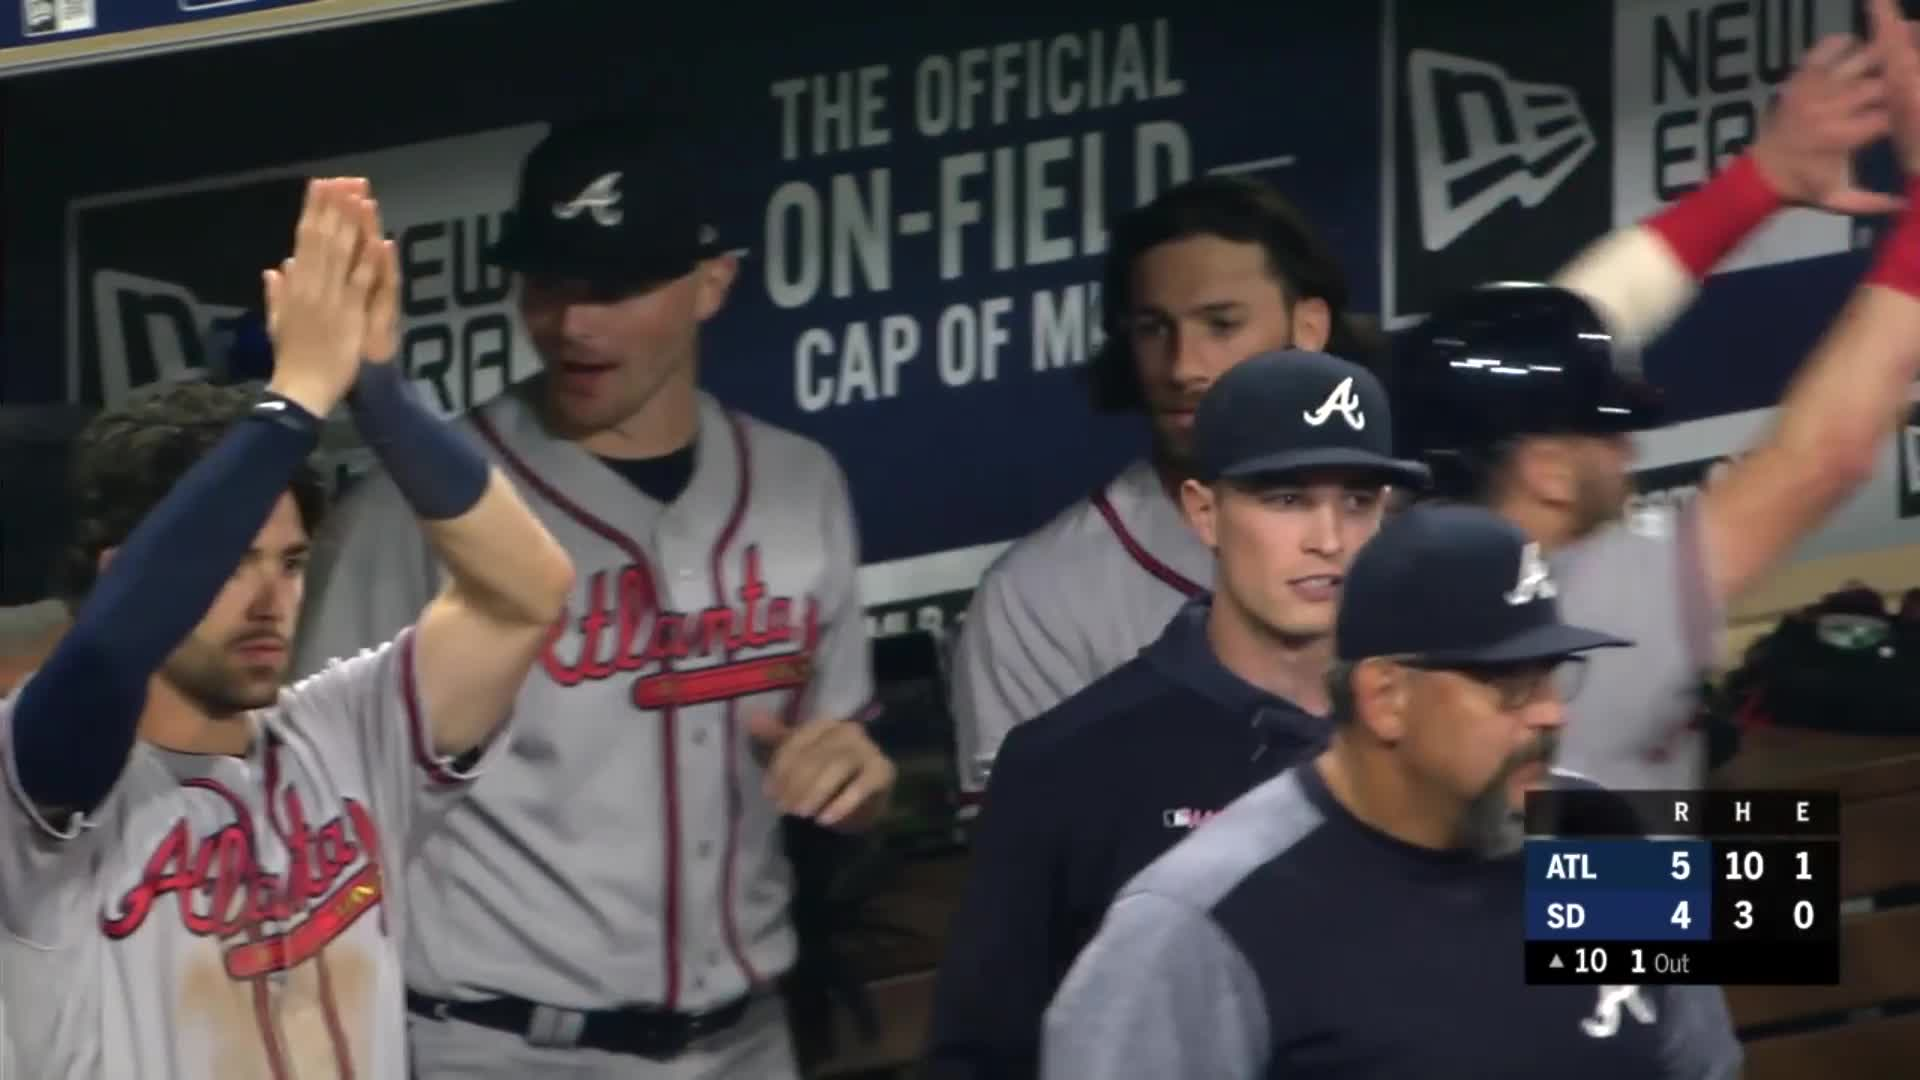 atlanta, atlanta braves, baseball, braves, san diego padres, Dansby Swanson clapping for Ozzie Albies. GIFs